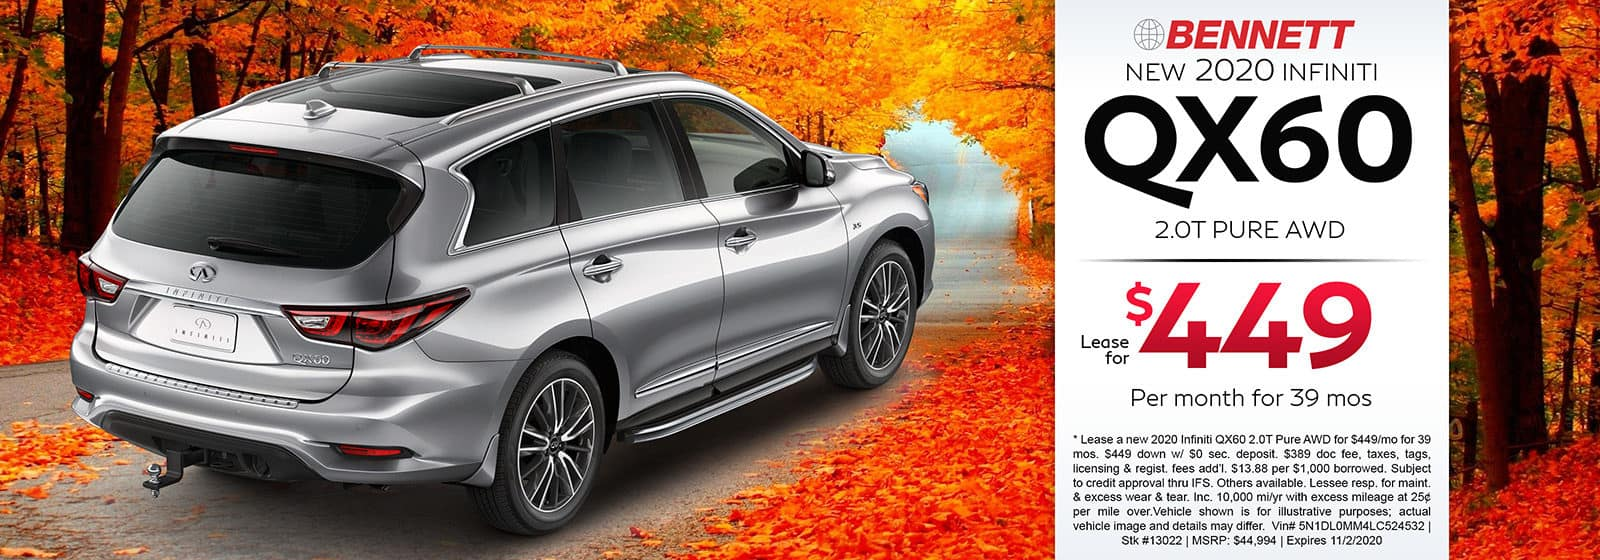 Lease a new 2020 INFINITI QX60 2.0T Pure AWD for $449 a month for 39 months. Or get special 0% APR financing for up to 72 months